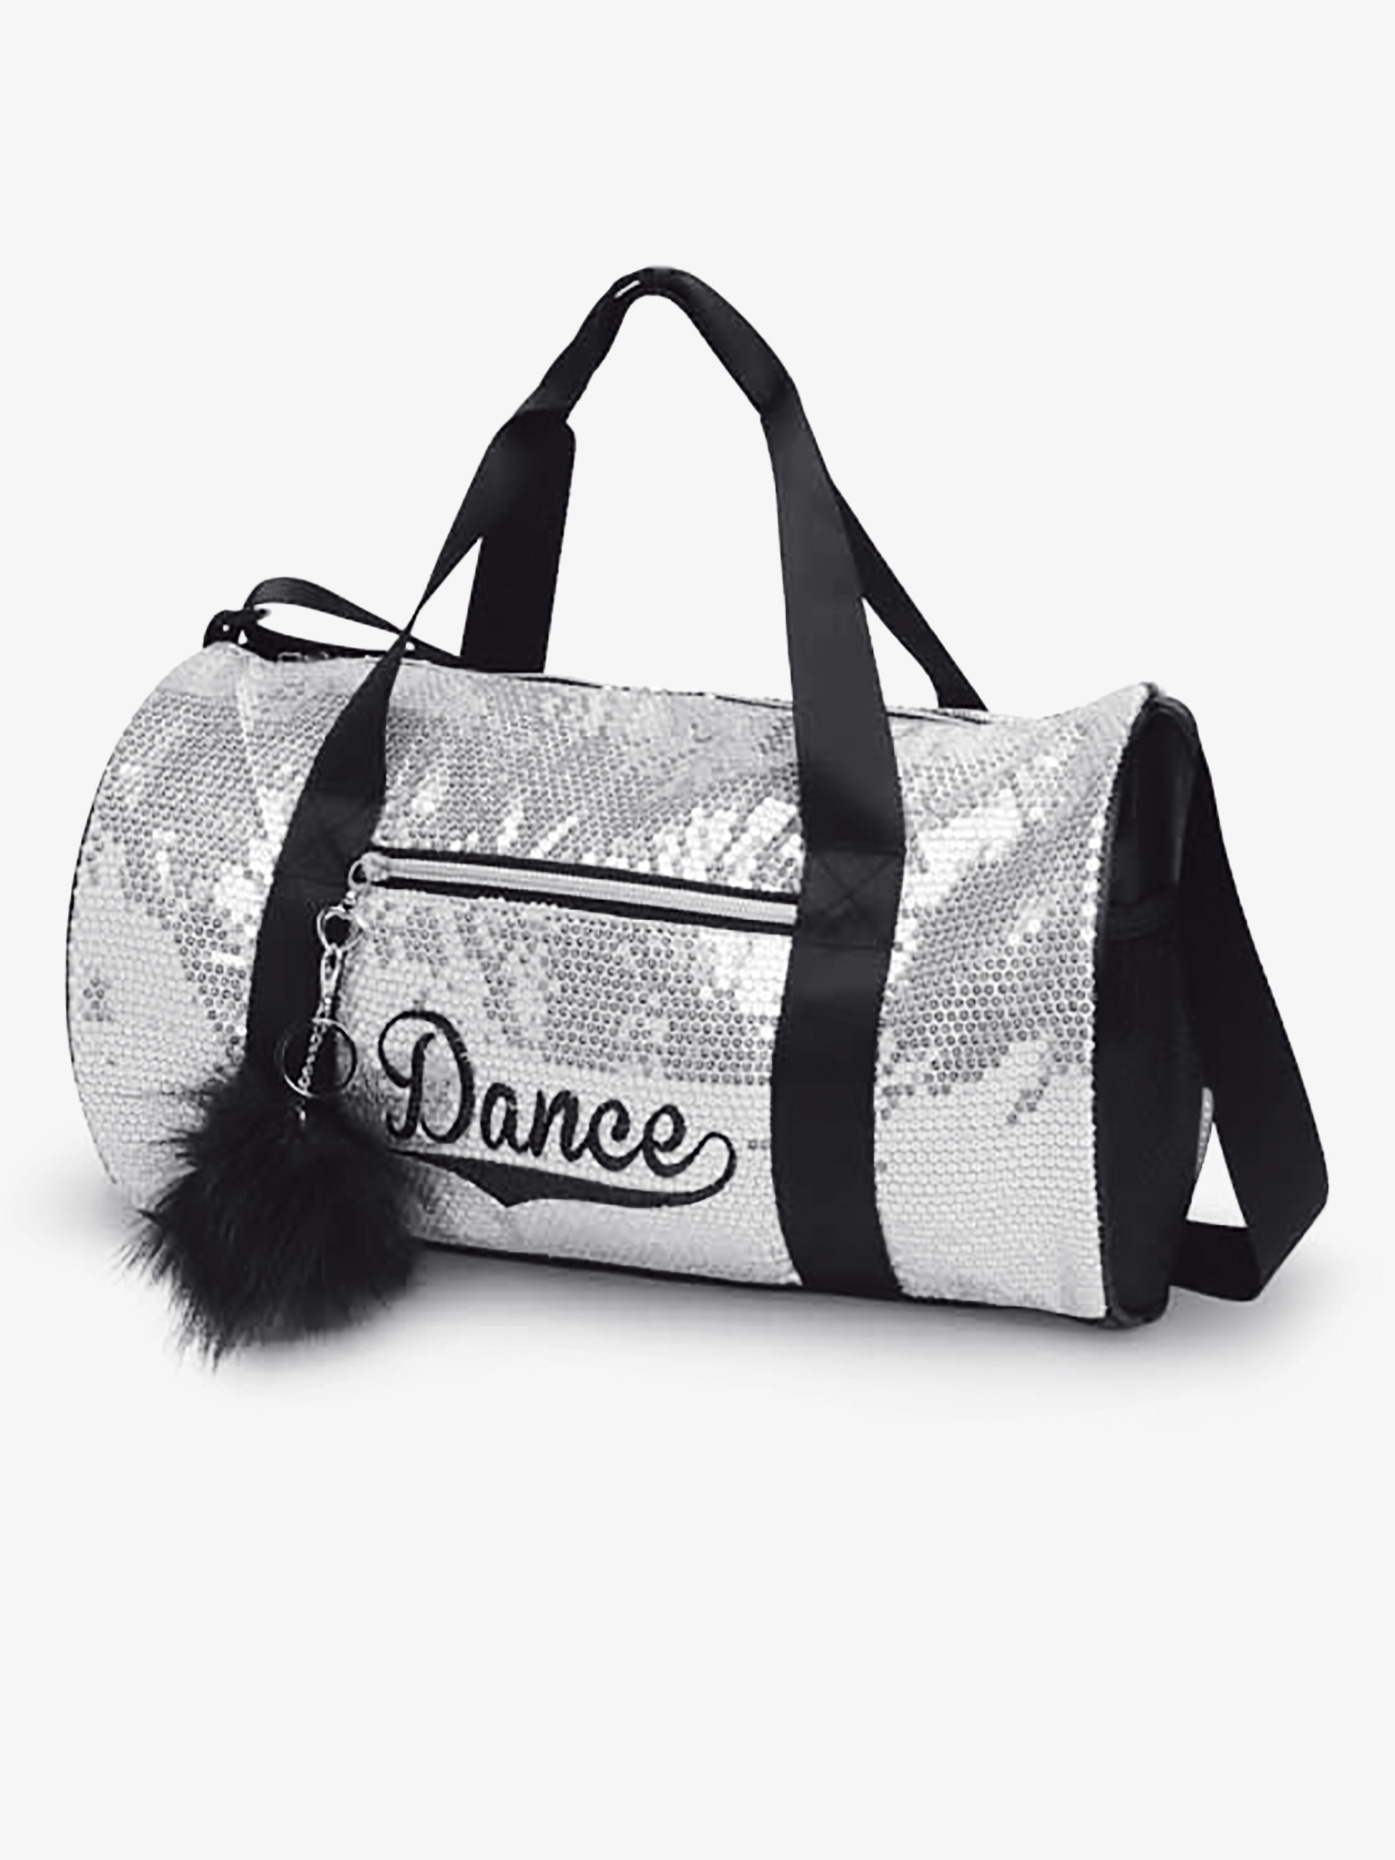 Sequin Dance Duffle Bag Style No B452 Loading Zoom